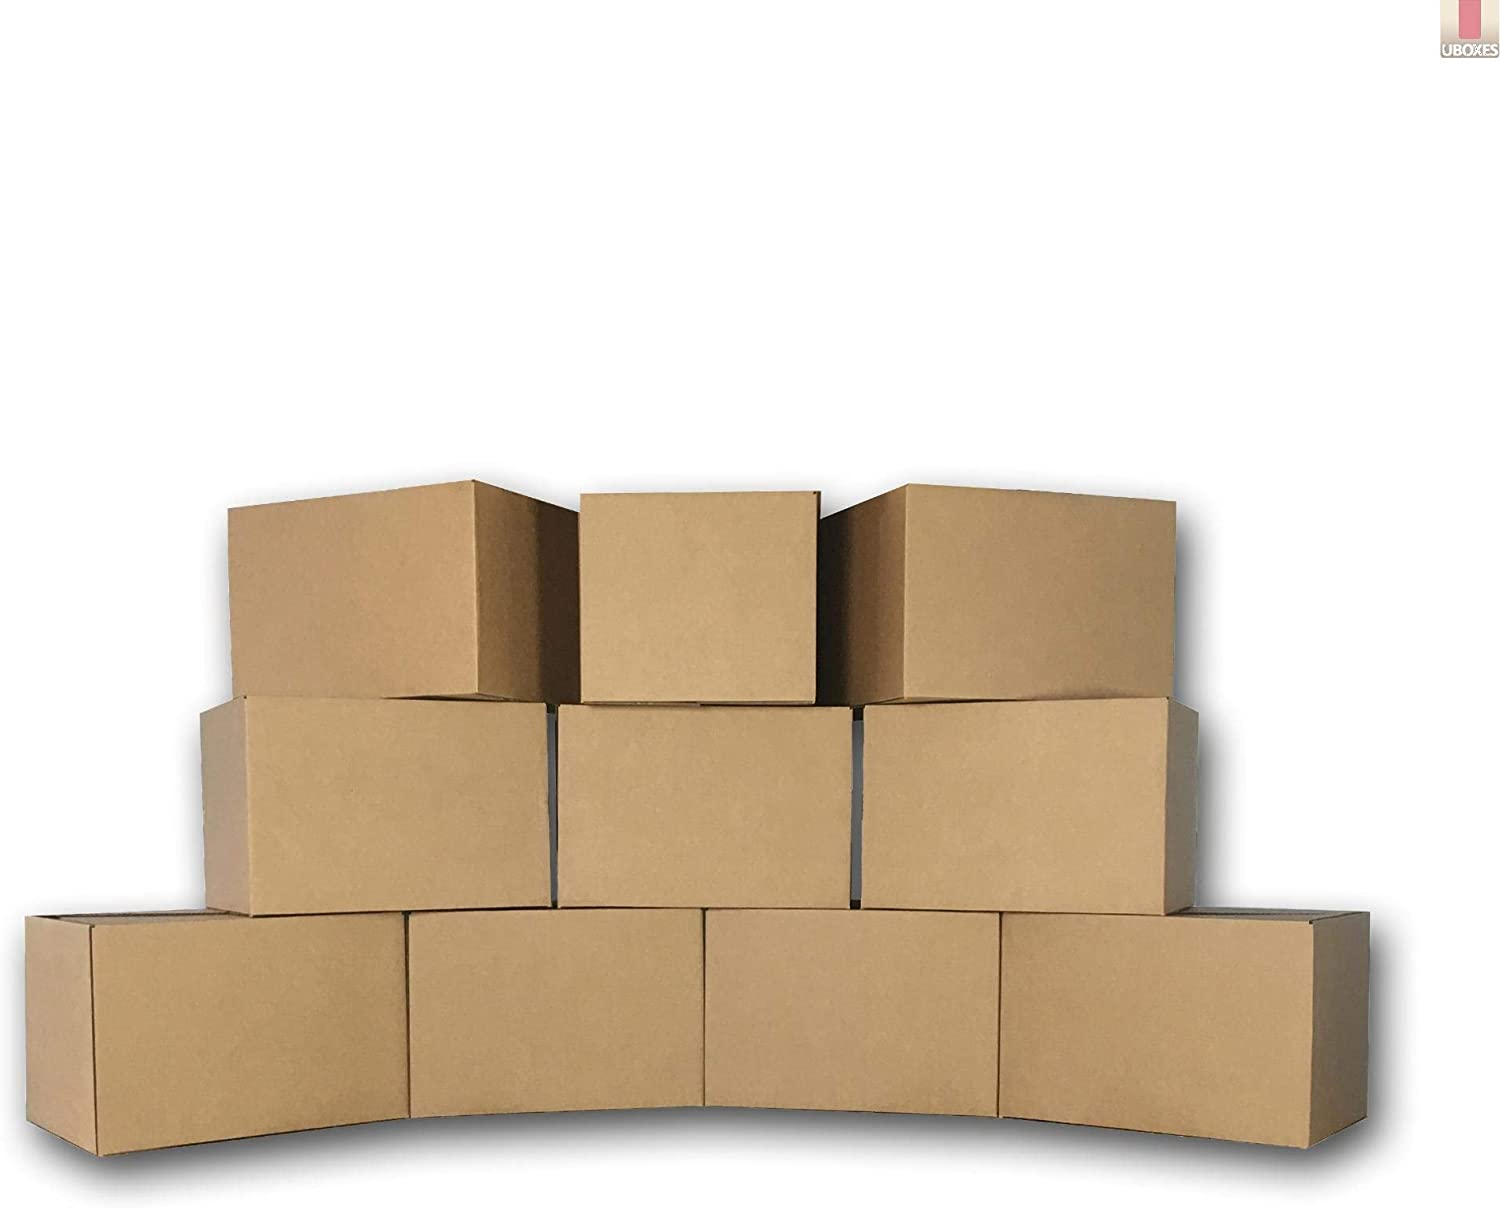 10 Medium Moving Boxes 18x14x12 Packing Cardboard Boxes 61BC2BjOugCL